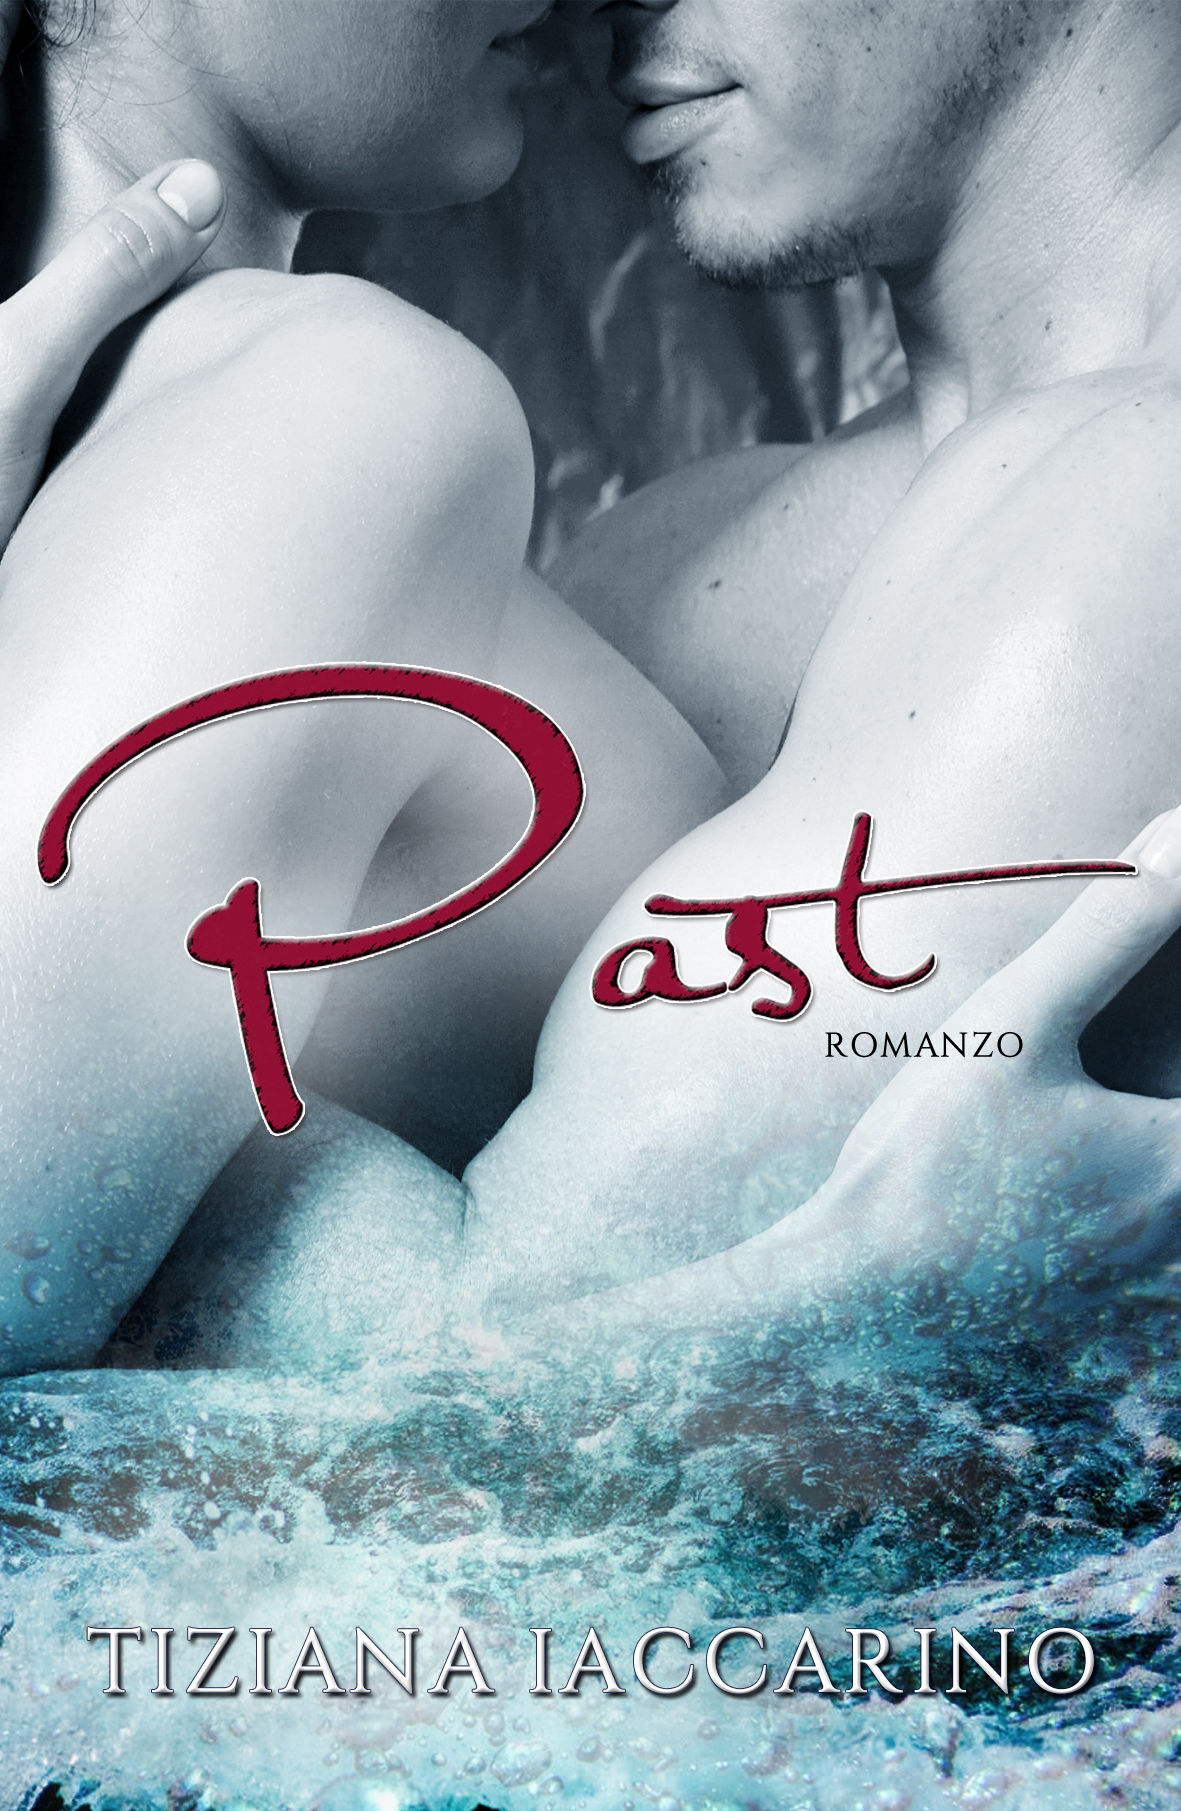 Cover Reveal Past di Tiziana Iaccarino